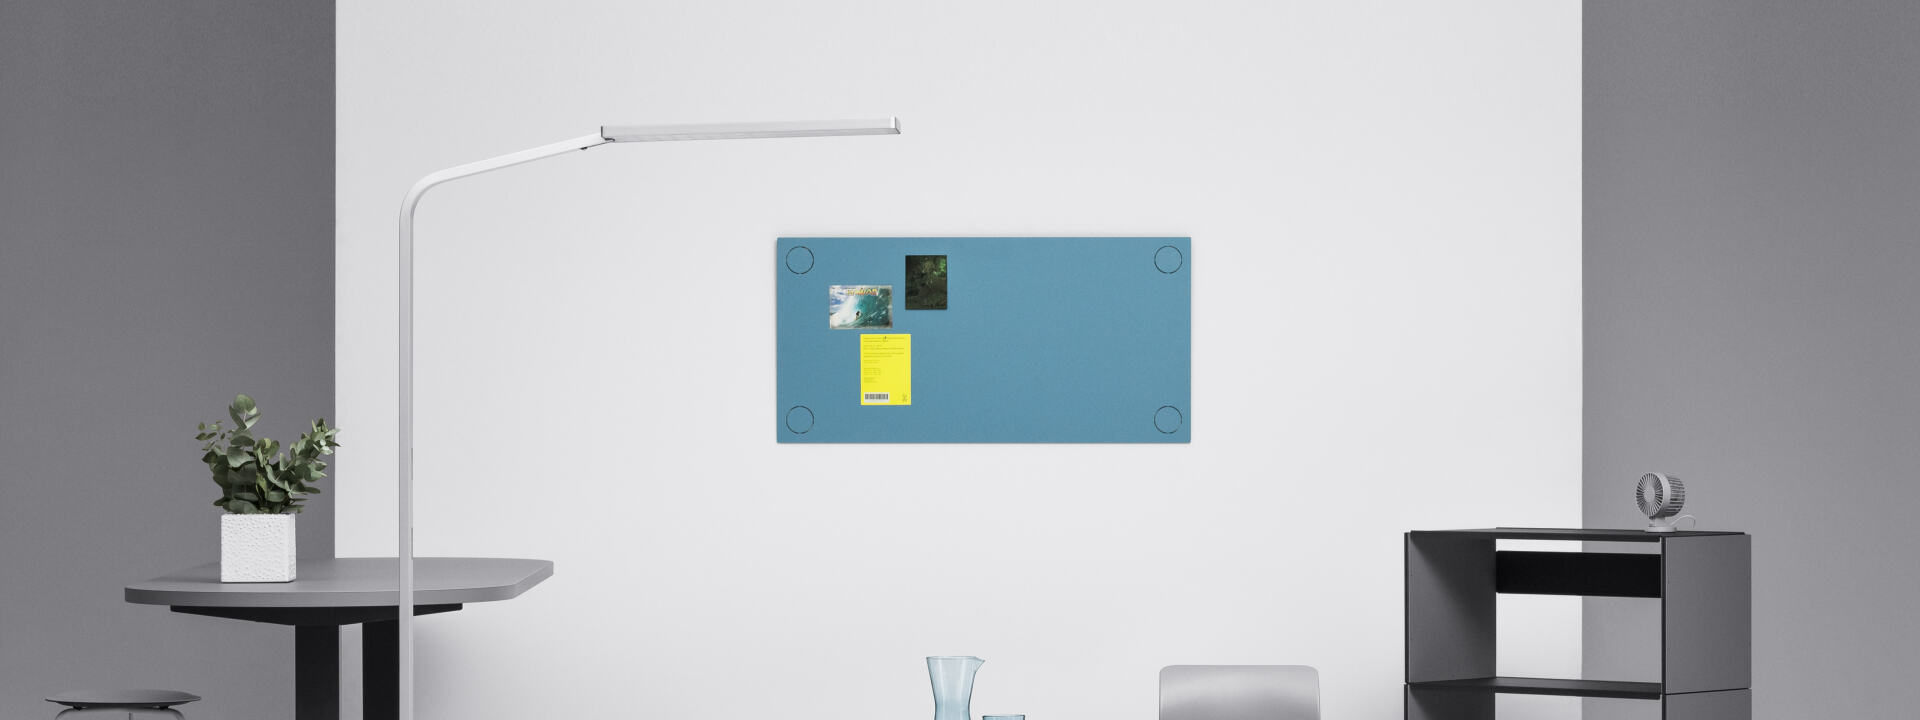 Magnetic Pinboard, Office & Home, Magnet wall, Whiteboard